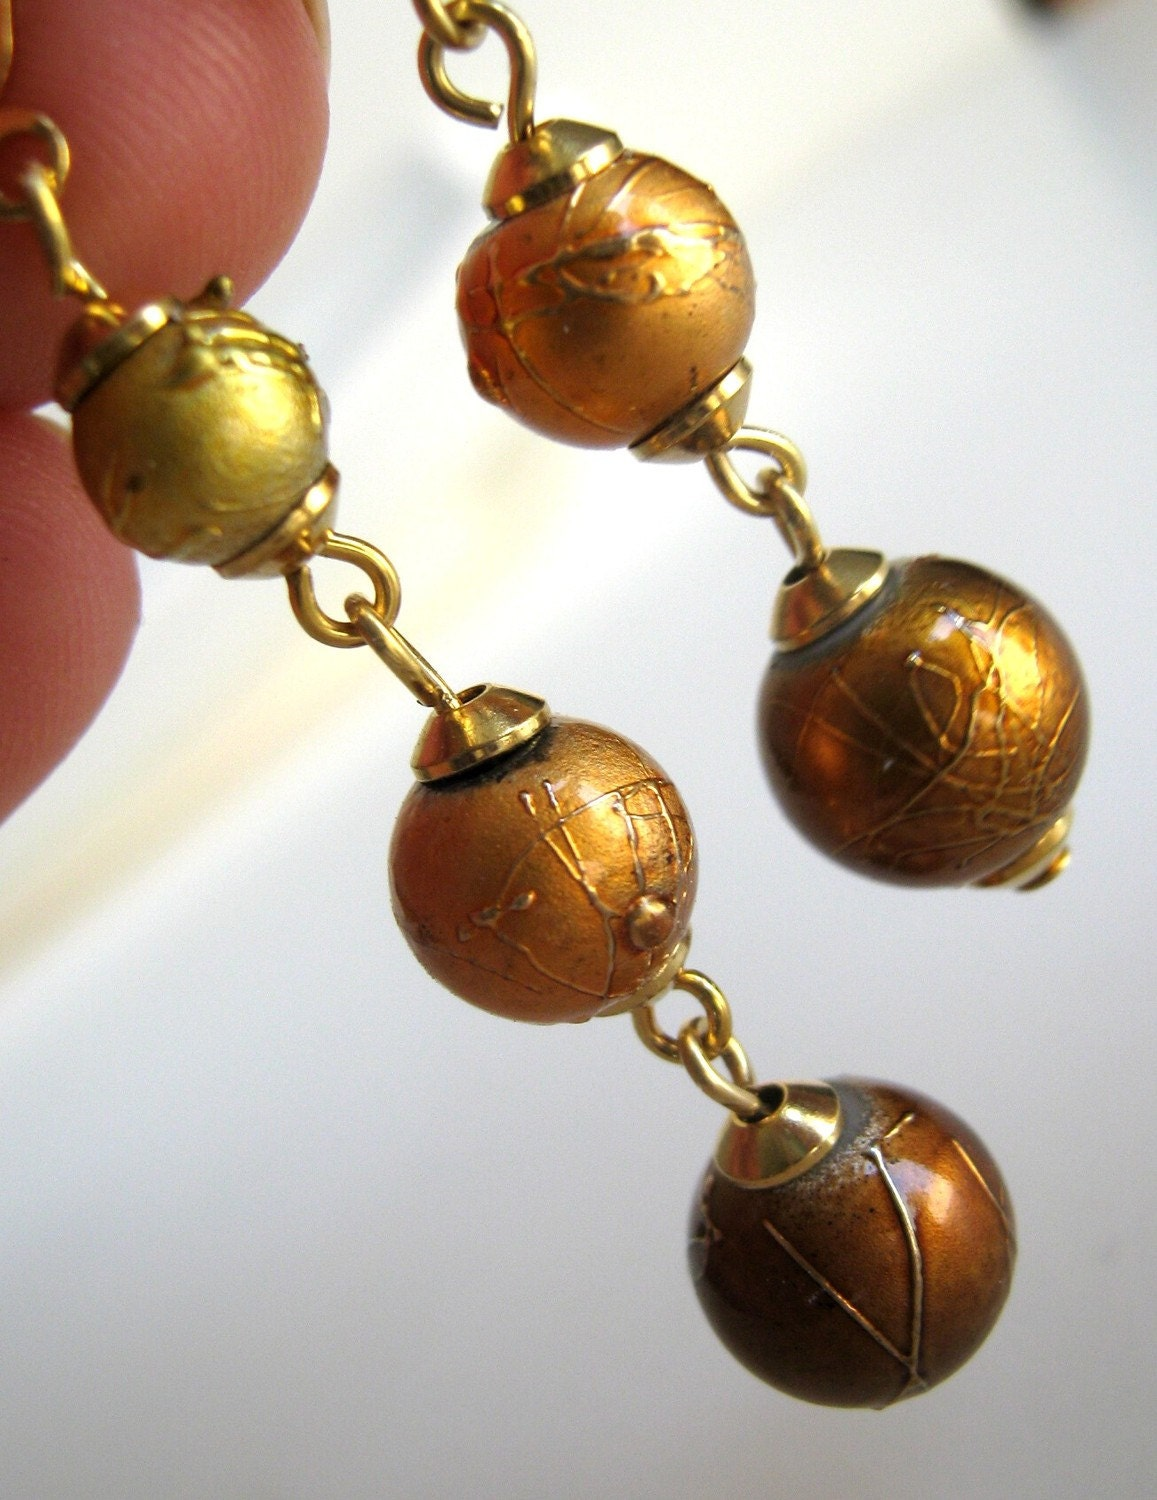 Tritone Earrings - rose gold, antiqued gold, and bright gold drop earrings